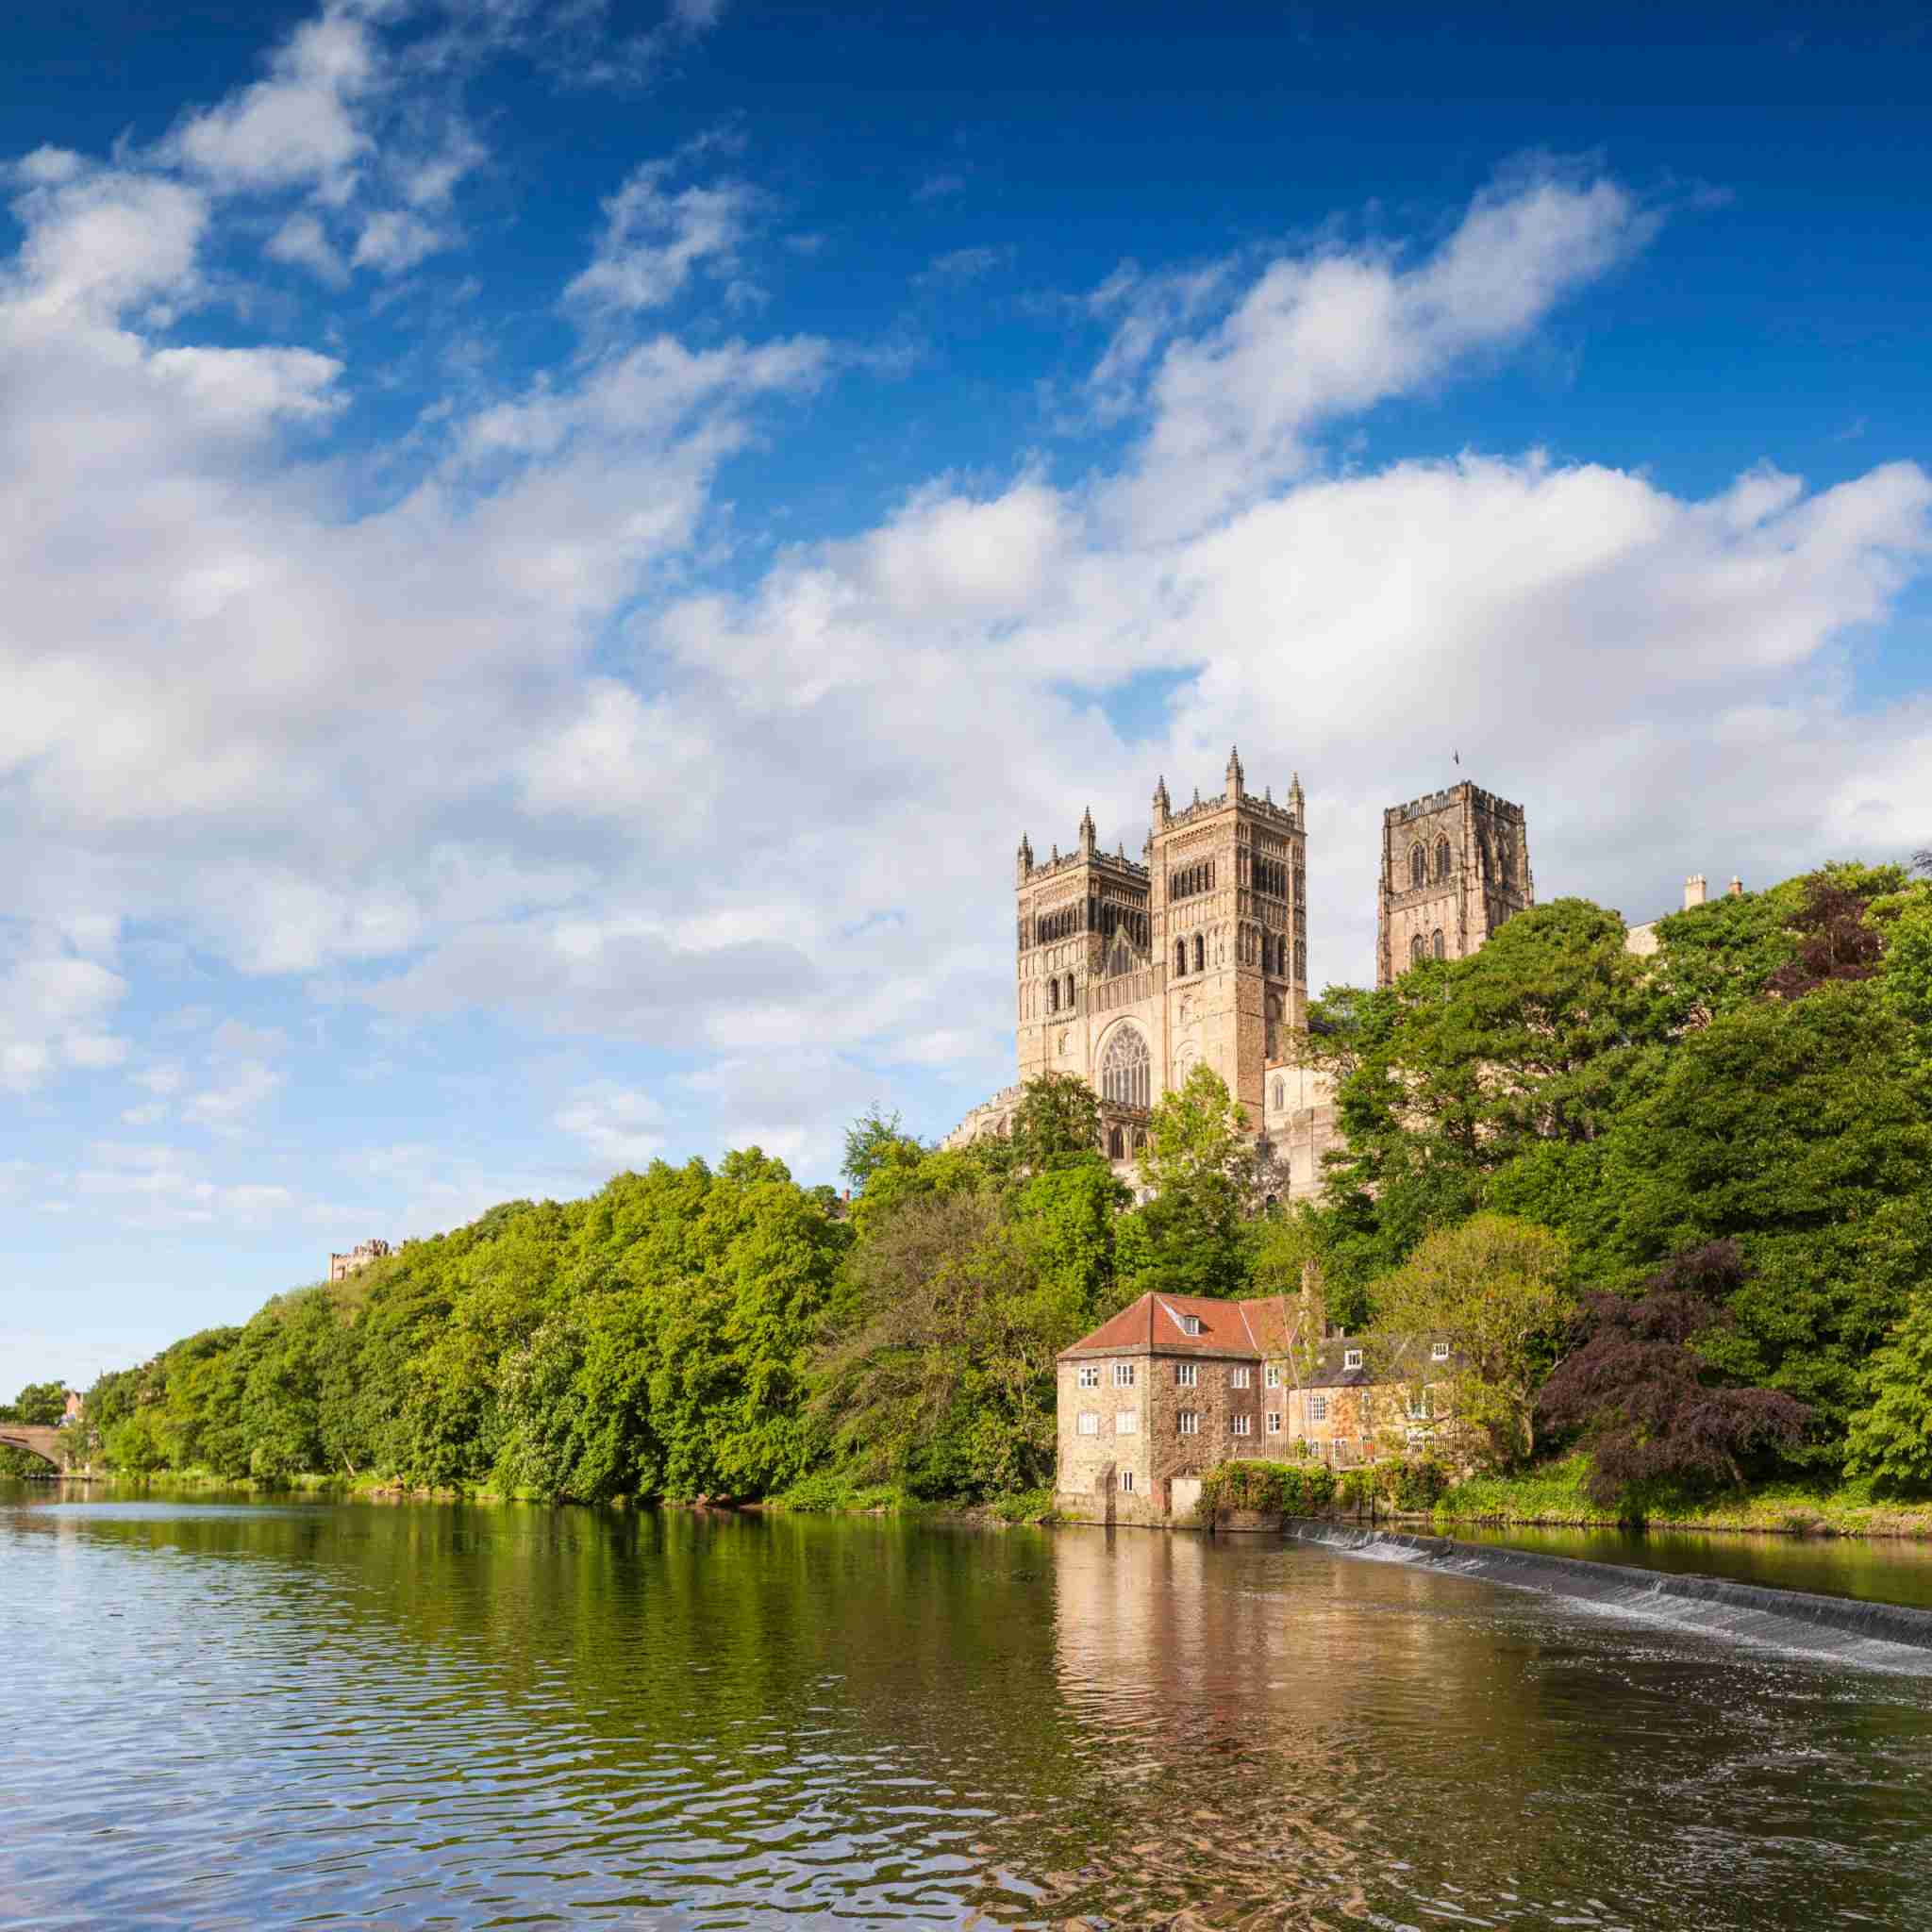 Durham Cathedral, on its rocky outcrop above the River Wear, in County Durham, England.